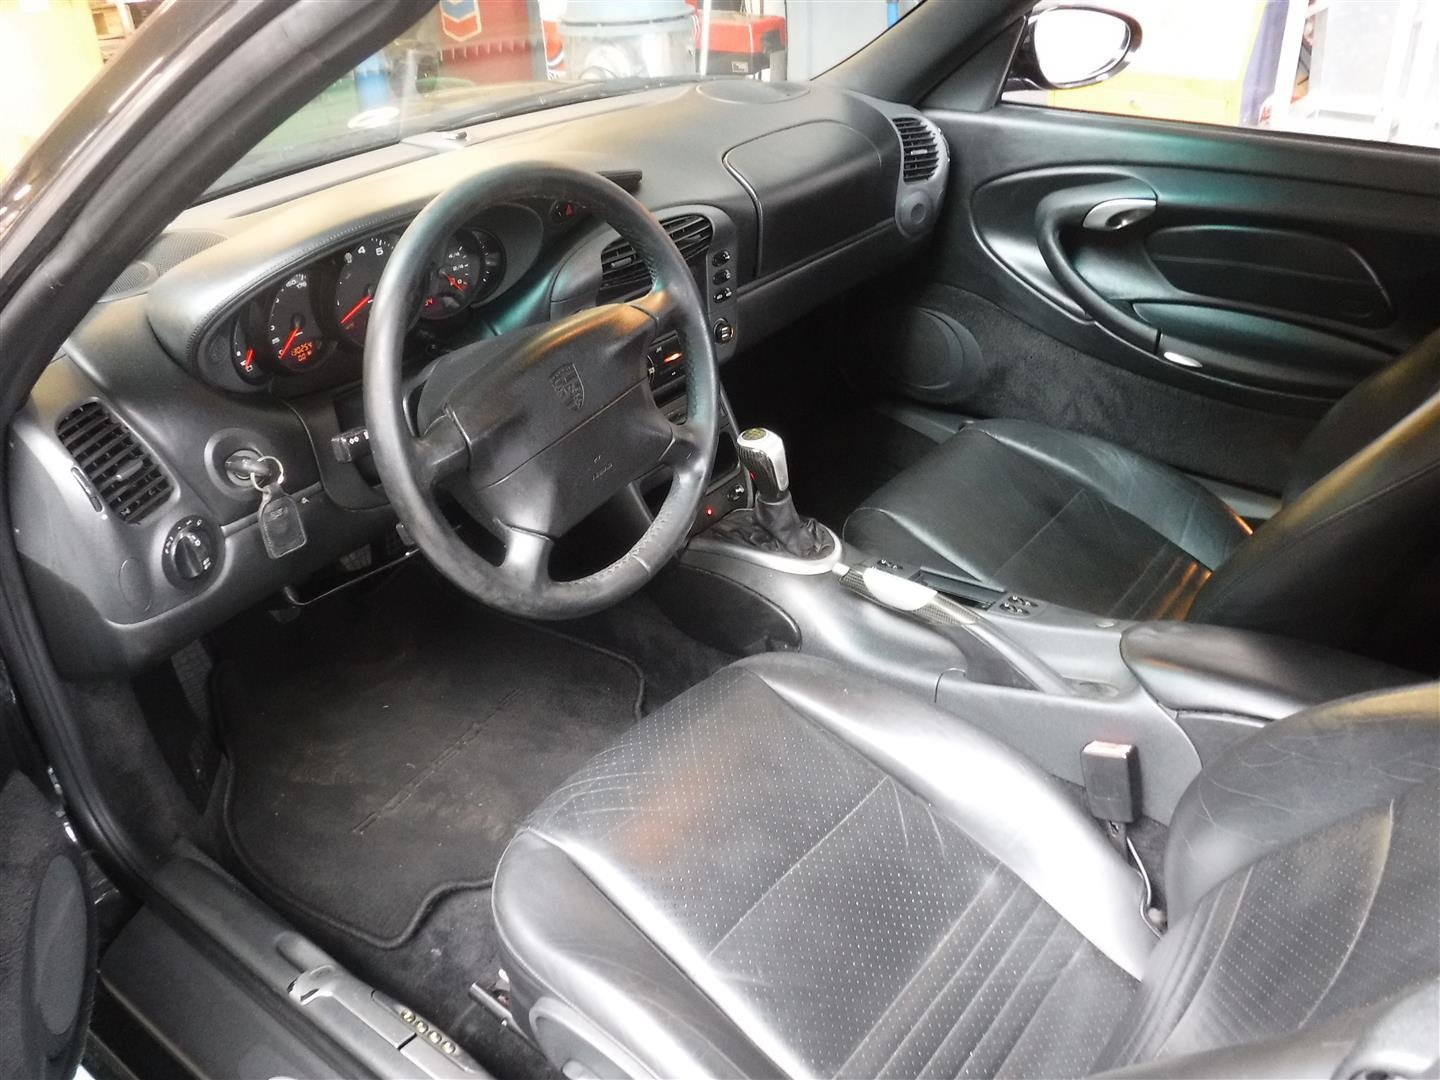 1999 Porsche 996 supercharger convertible For Sale (picture 3 of 6)